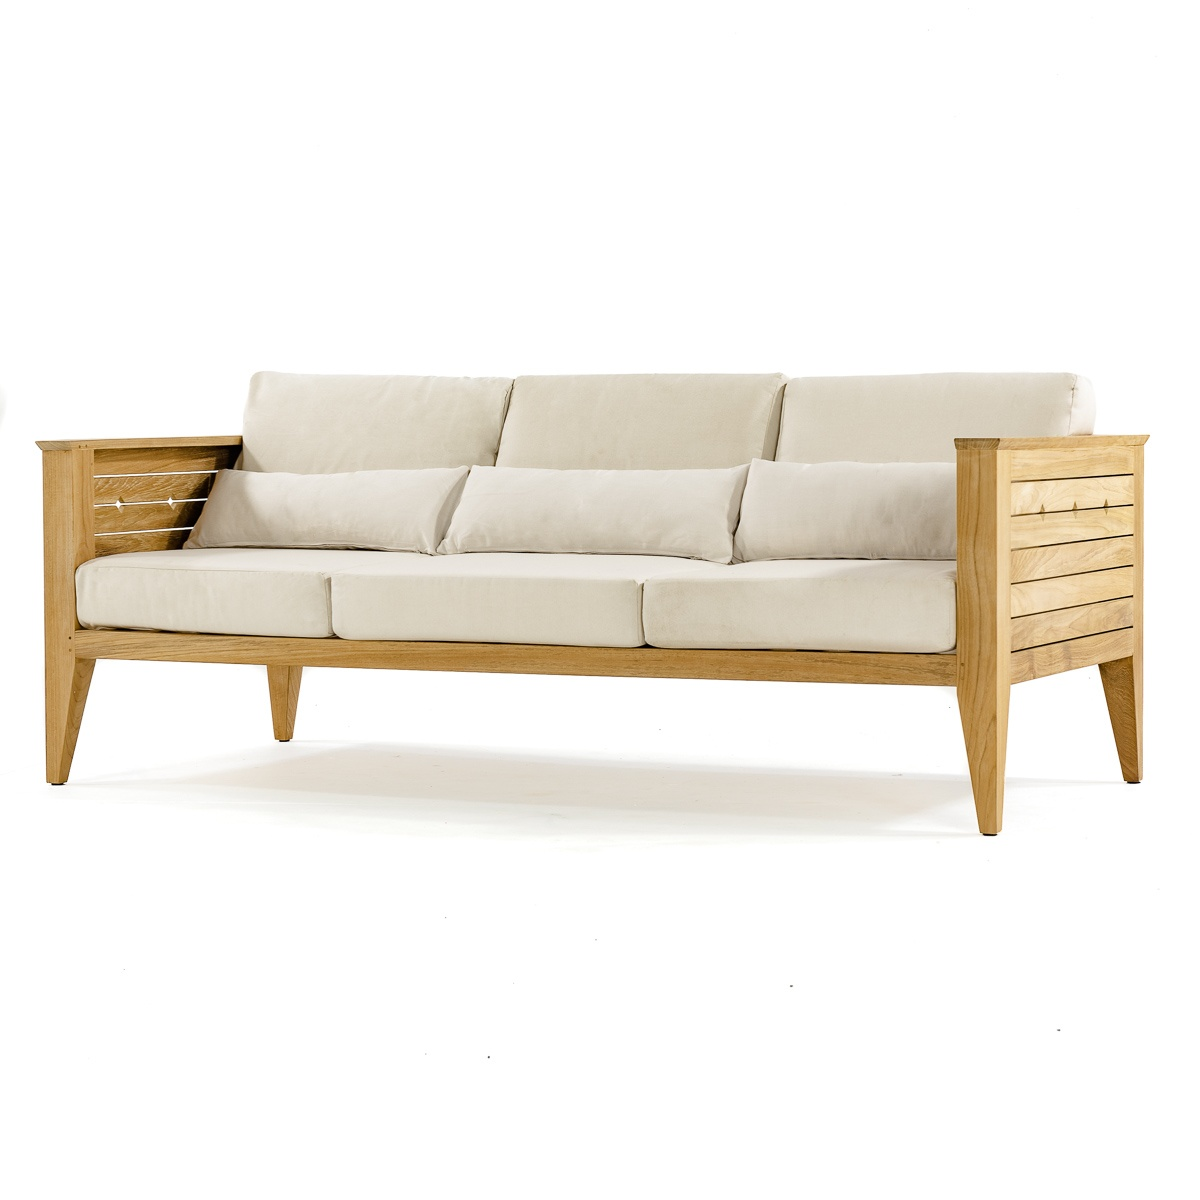 Craftsman Deep Seating Sofa Westminster Teak Outdoor Furniture